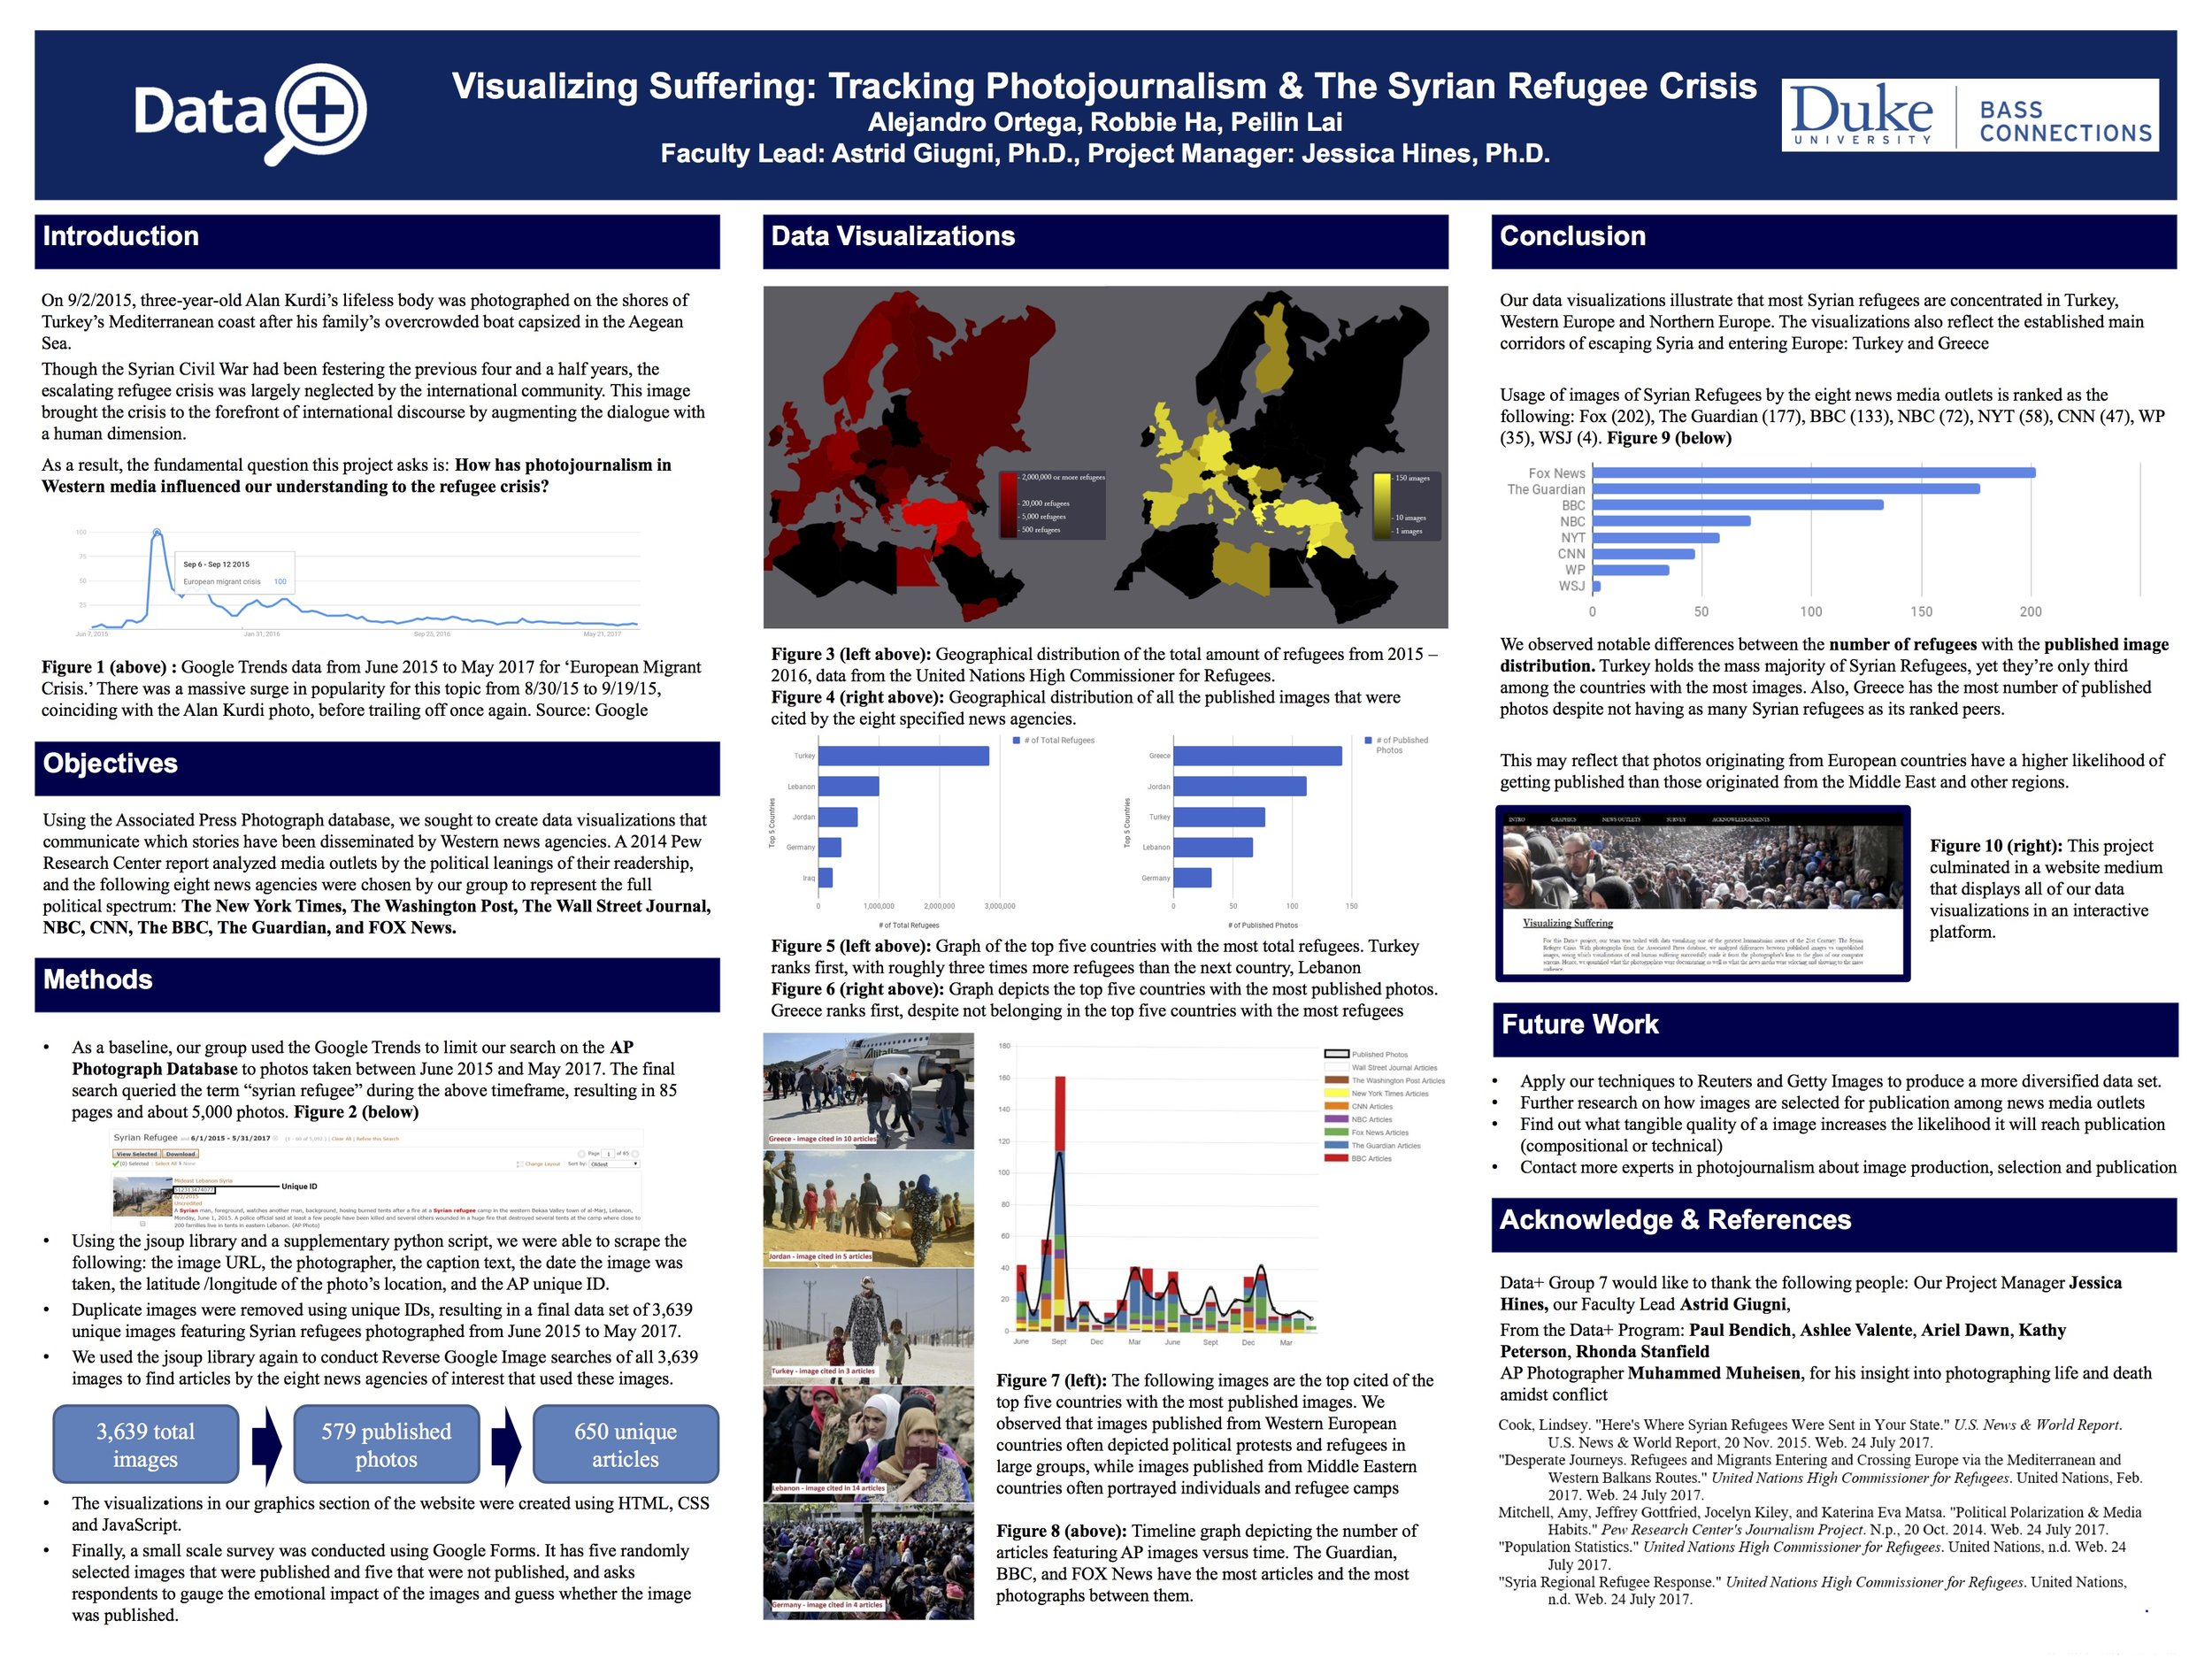 Student group poster from final presentation on photojournalism and the Syrian Refugee Crisis. Click to enlarge.